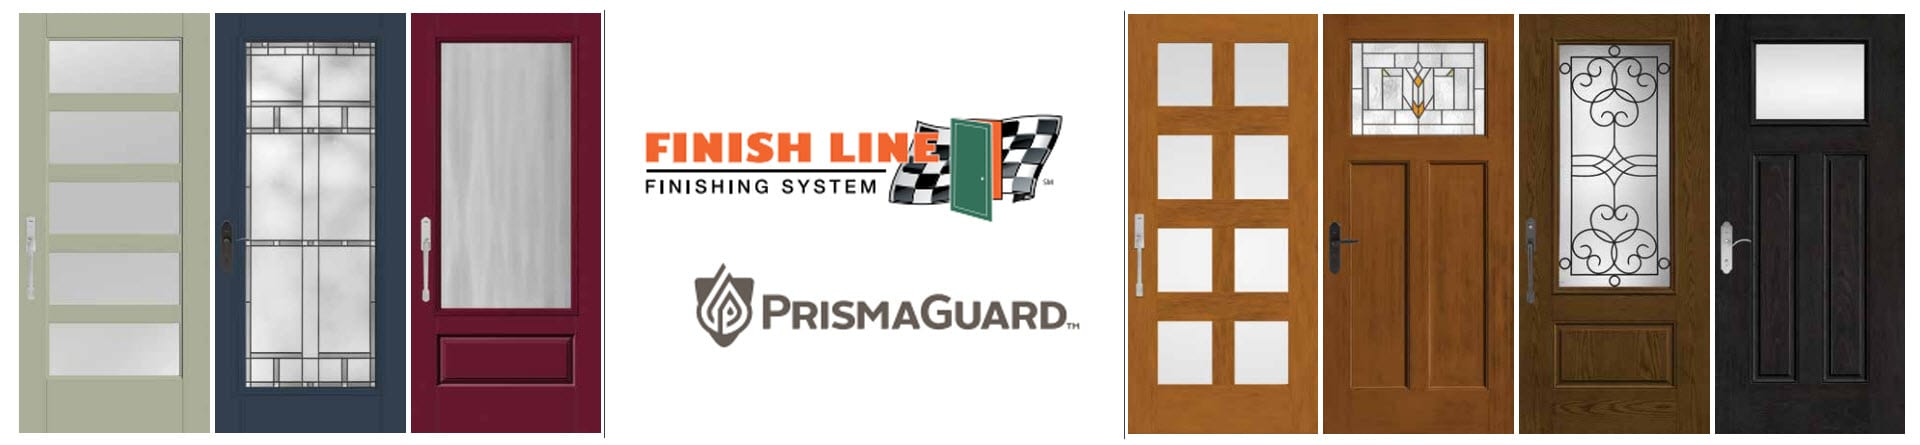 Finish Line Finishing System Featuring Prismaguard